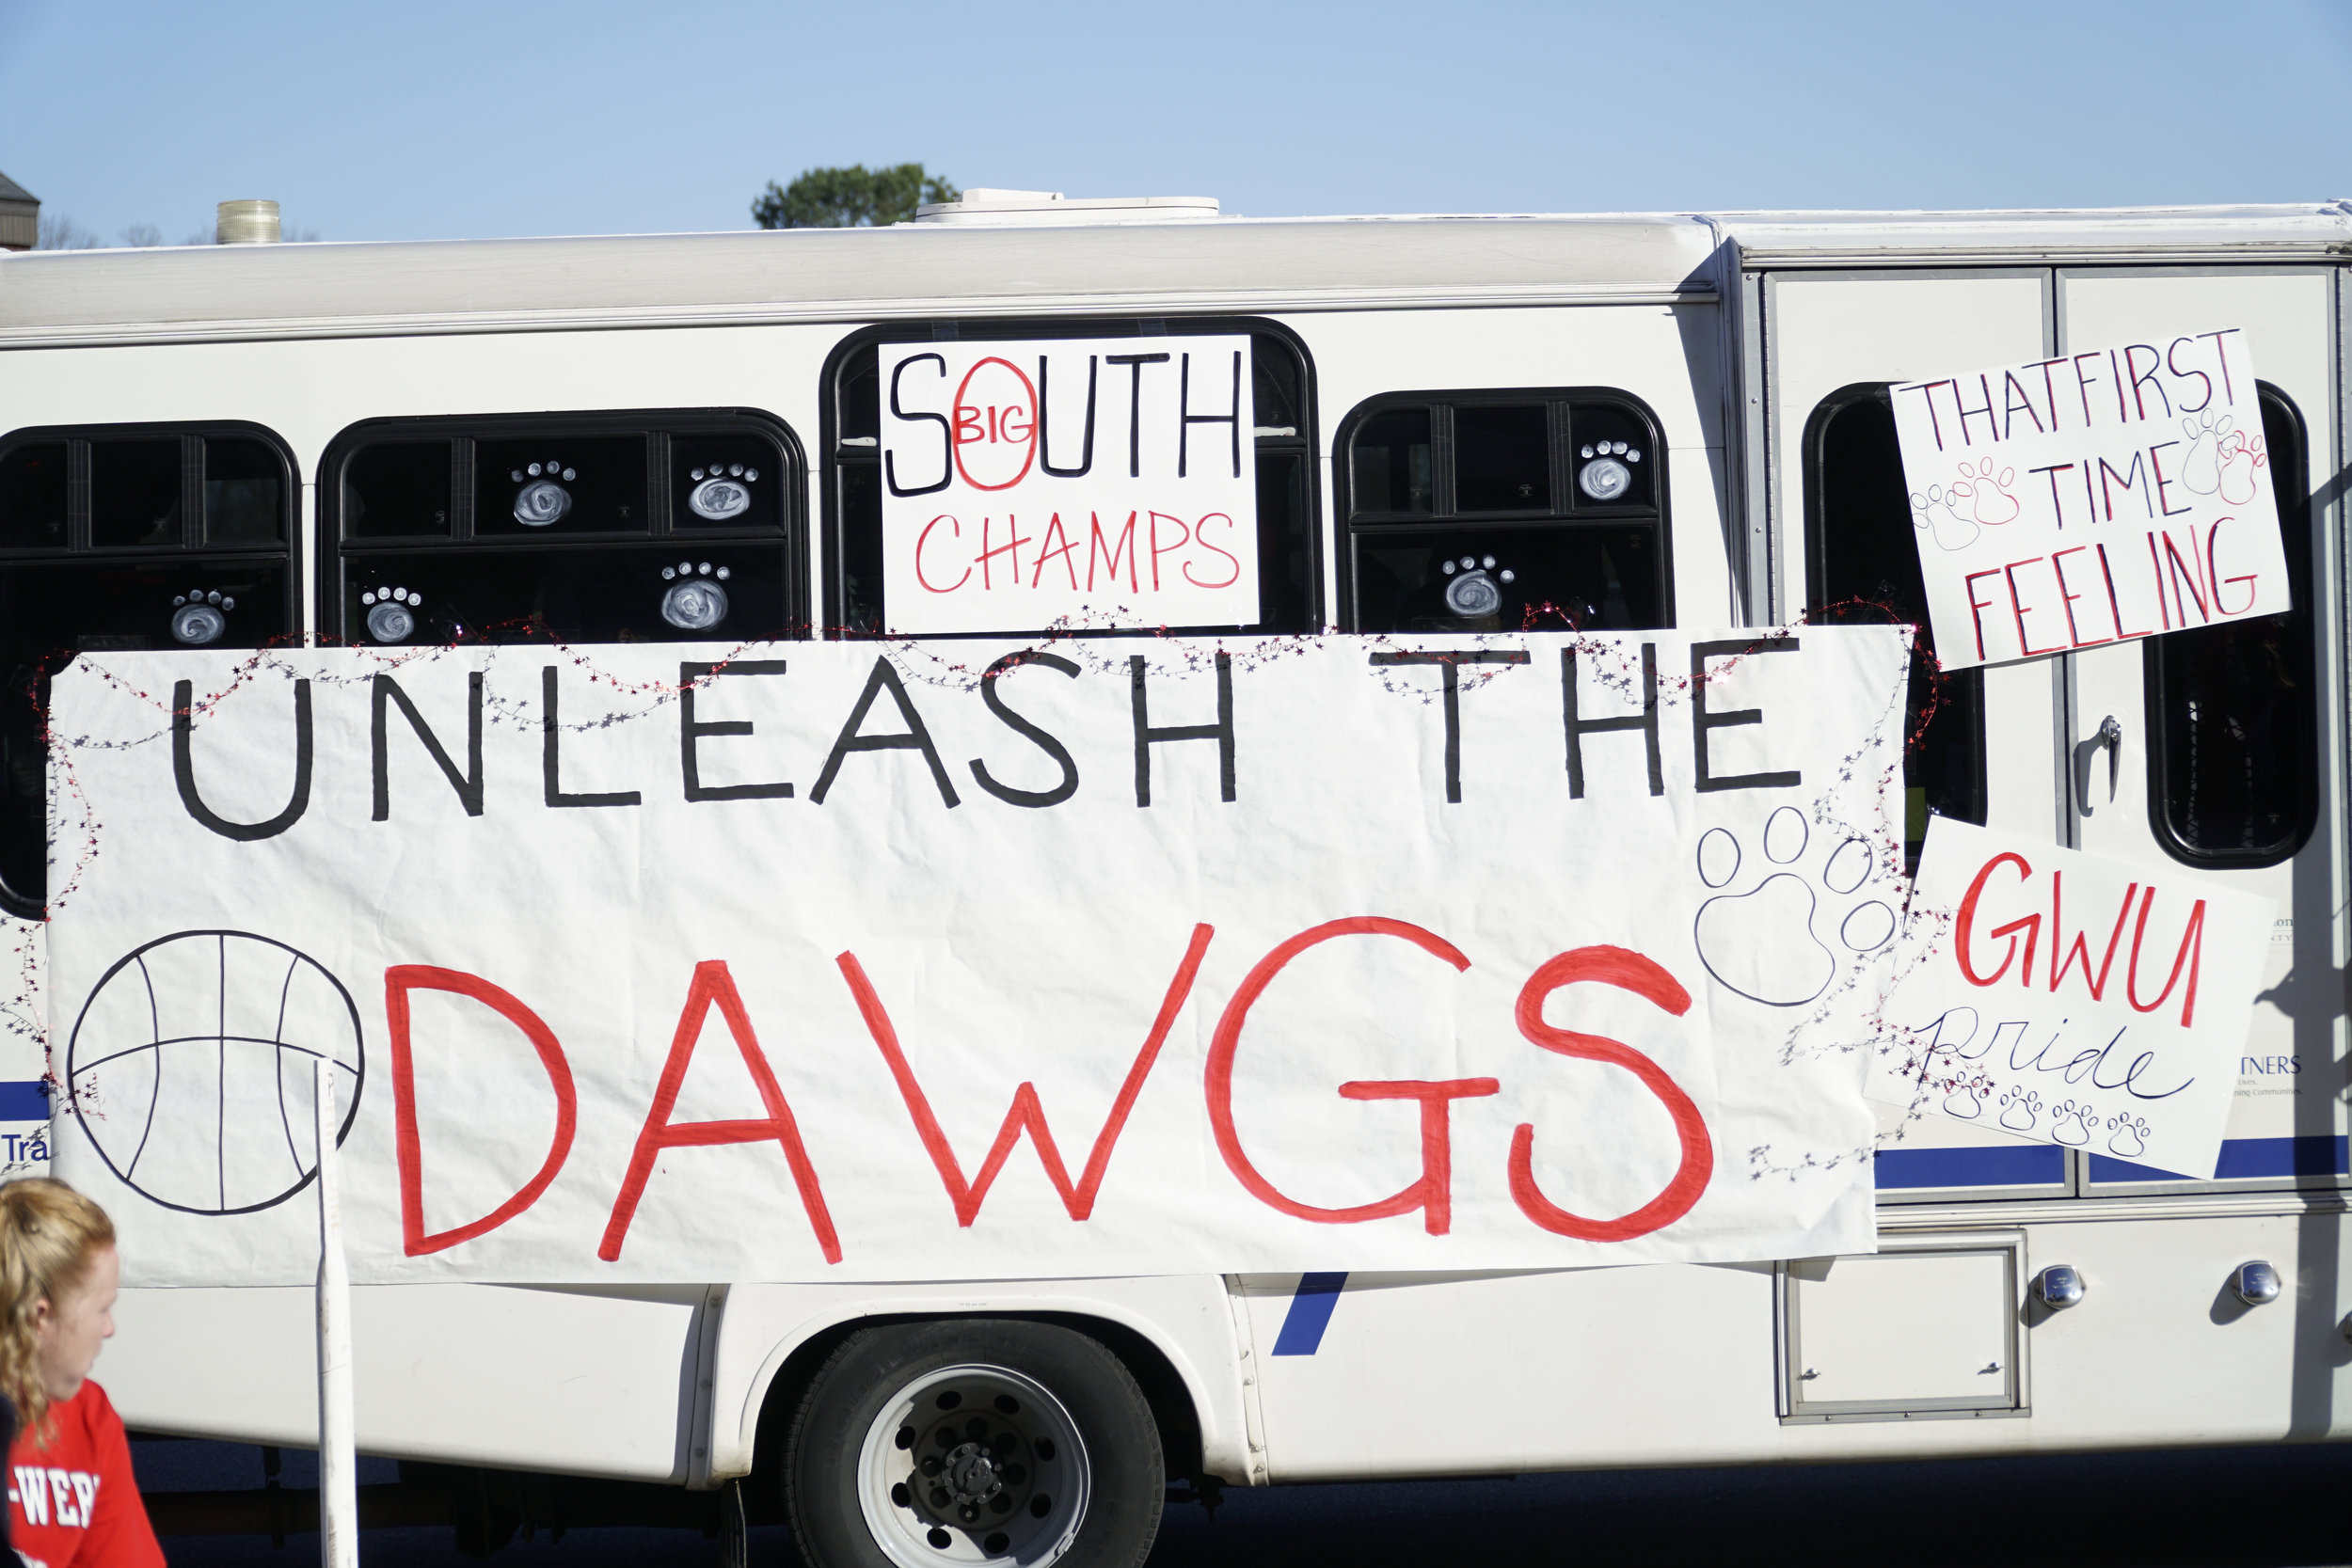 The bus that delivered the team to the Tucker Student center was decorated with signs.